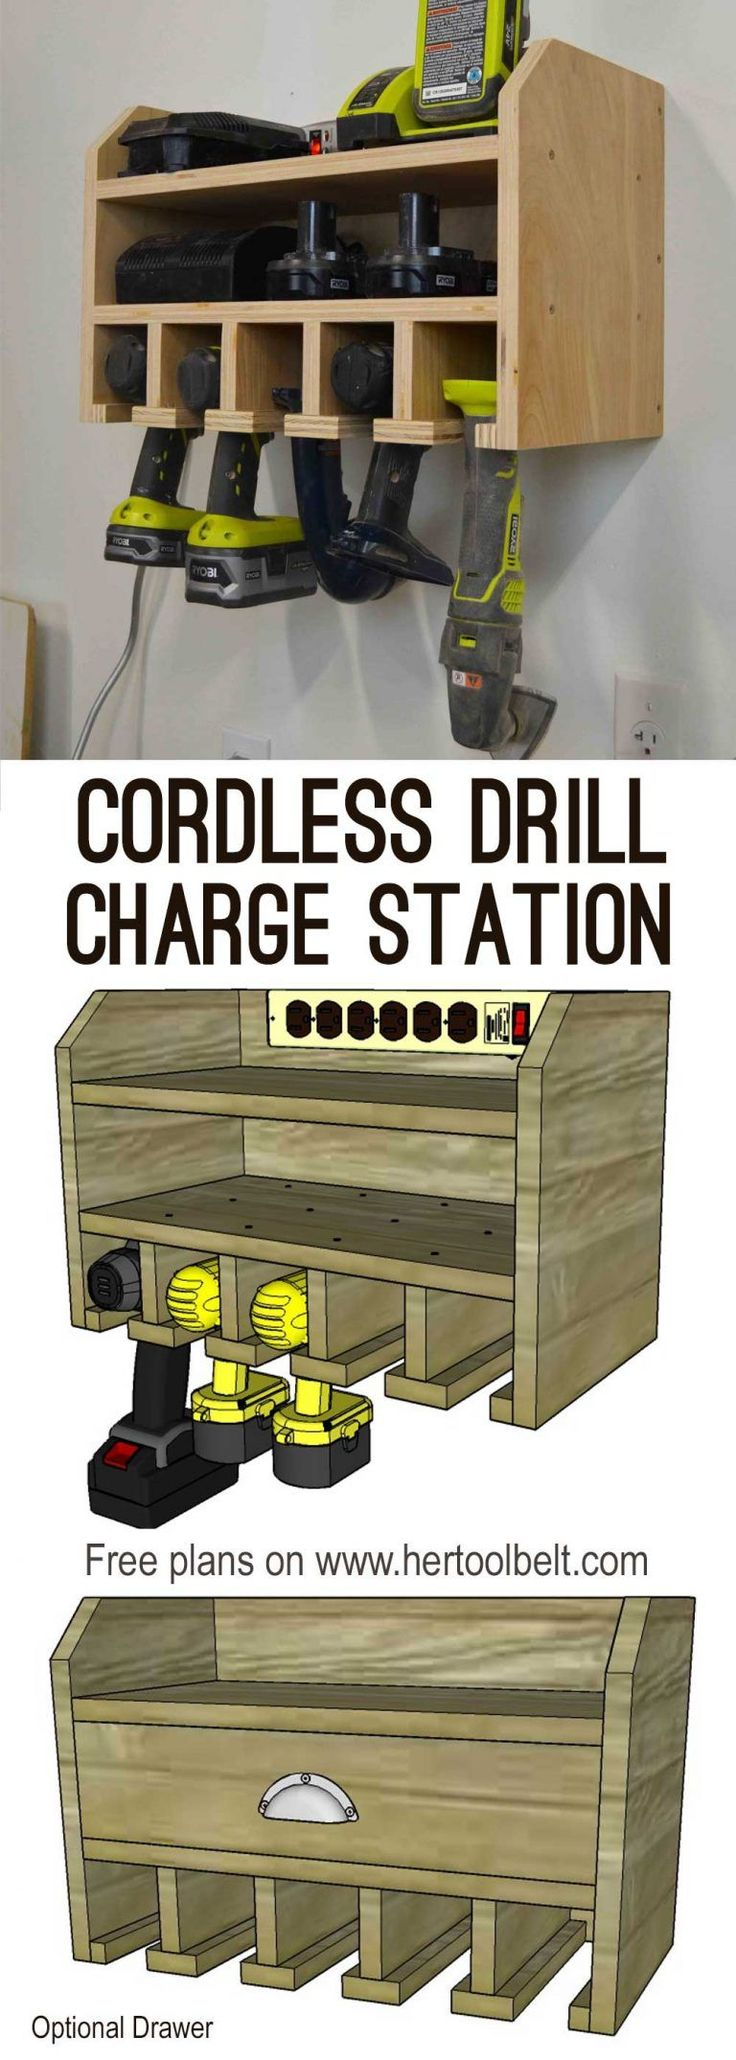 Cordless Drill Storage - Charging Station Organize your tools, free plans for a ...